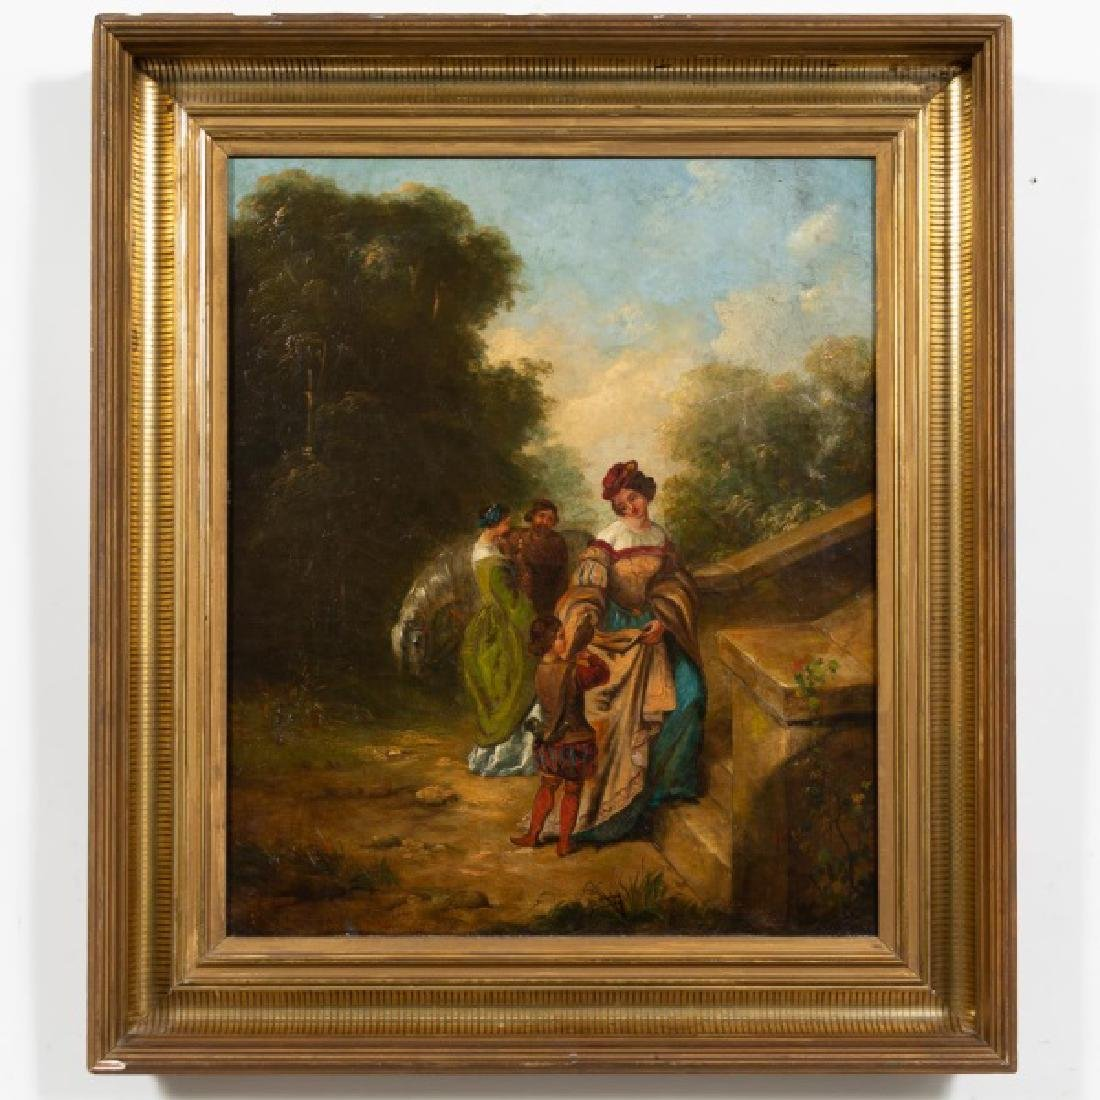 19th C. Pastoral Courting Scene, Oil on Canvas